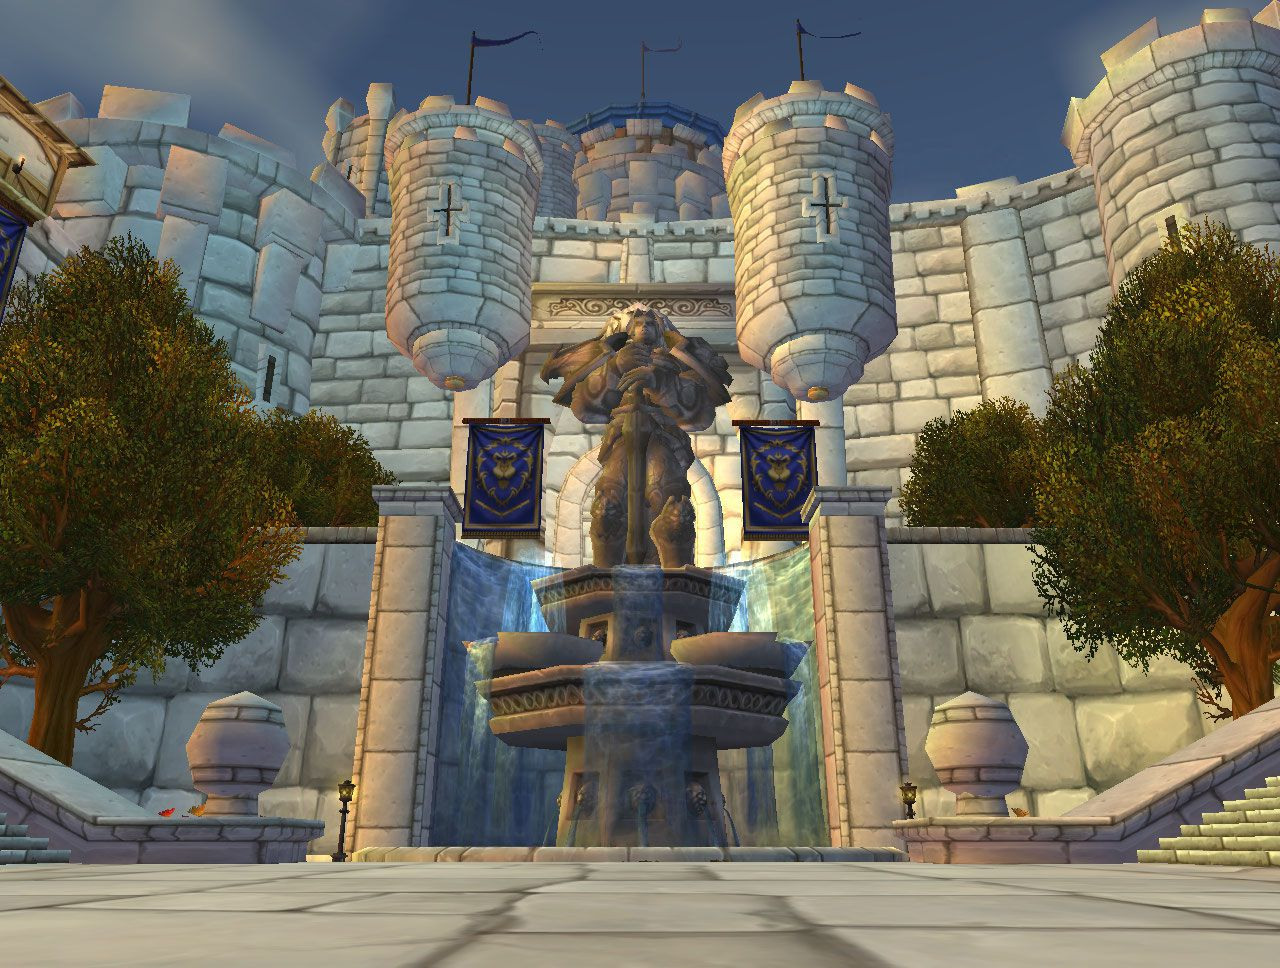 Stormwind City Cataclysm wow screenshot